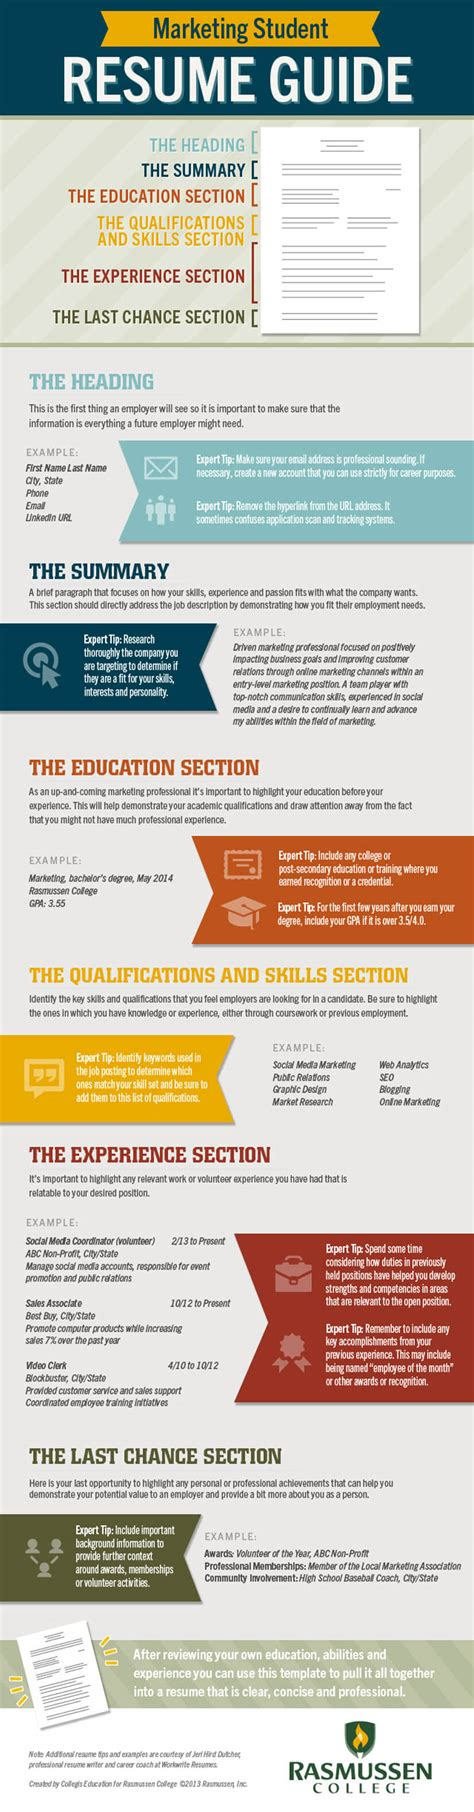 resume writing guide for marketing students infographic